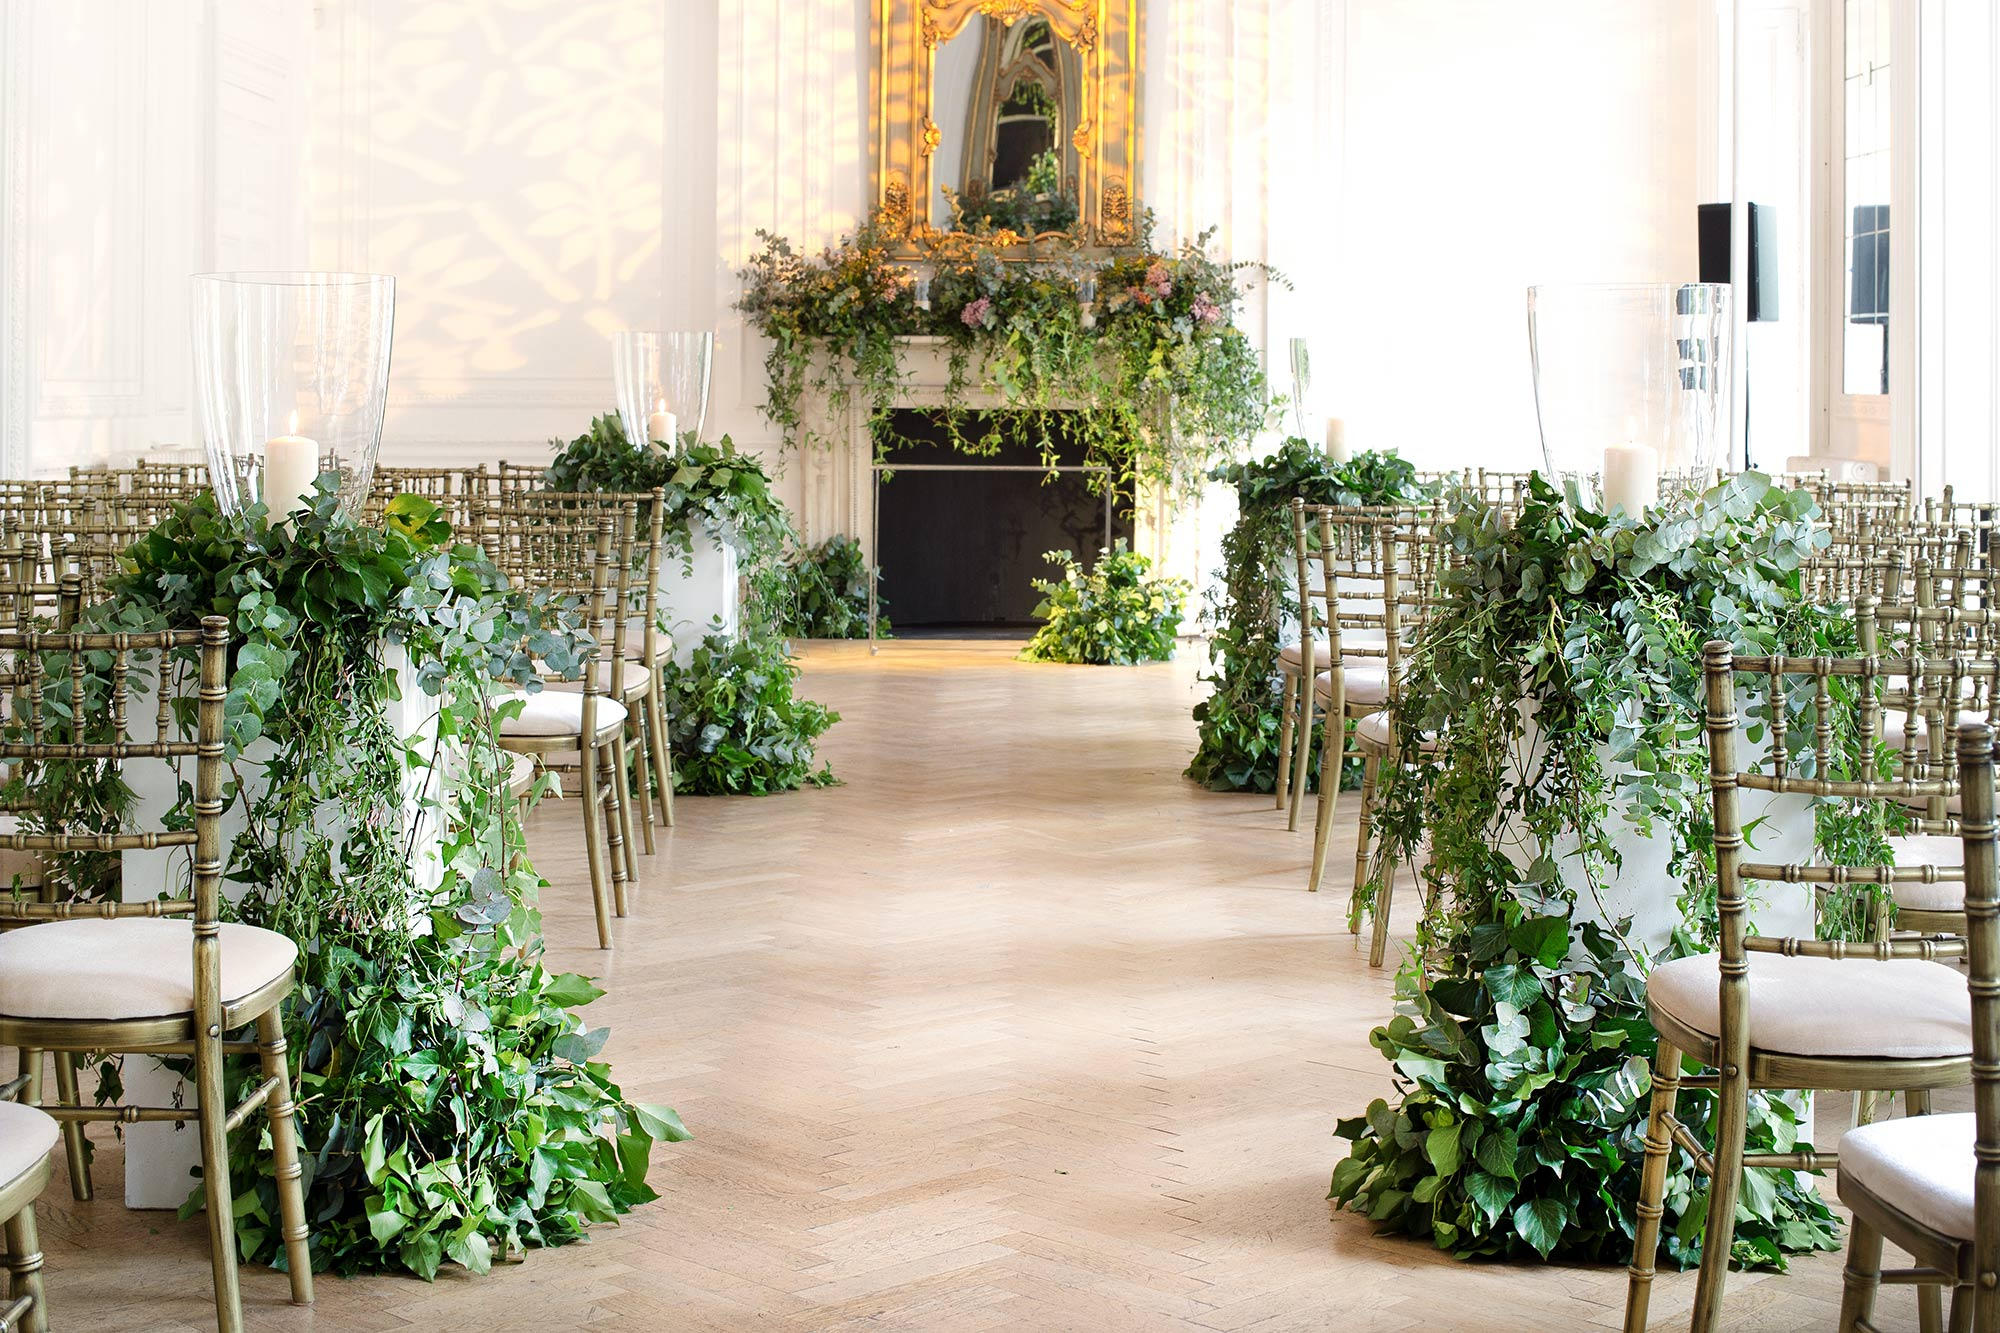 ENGLISH COUNTRY GARDEN TO RICH FLORALS